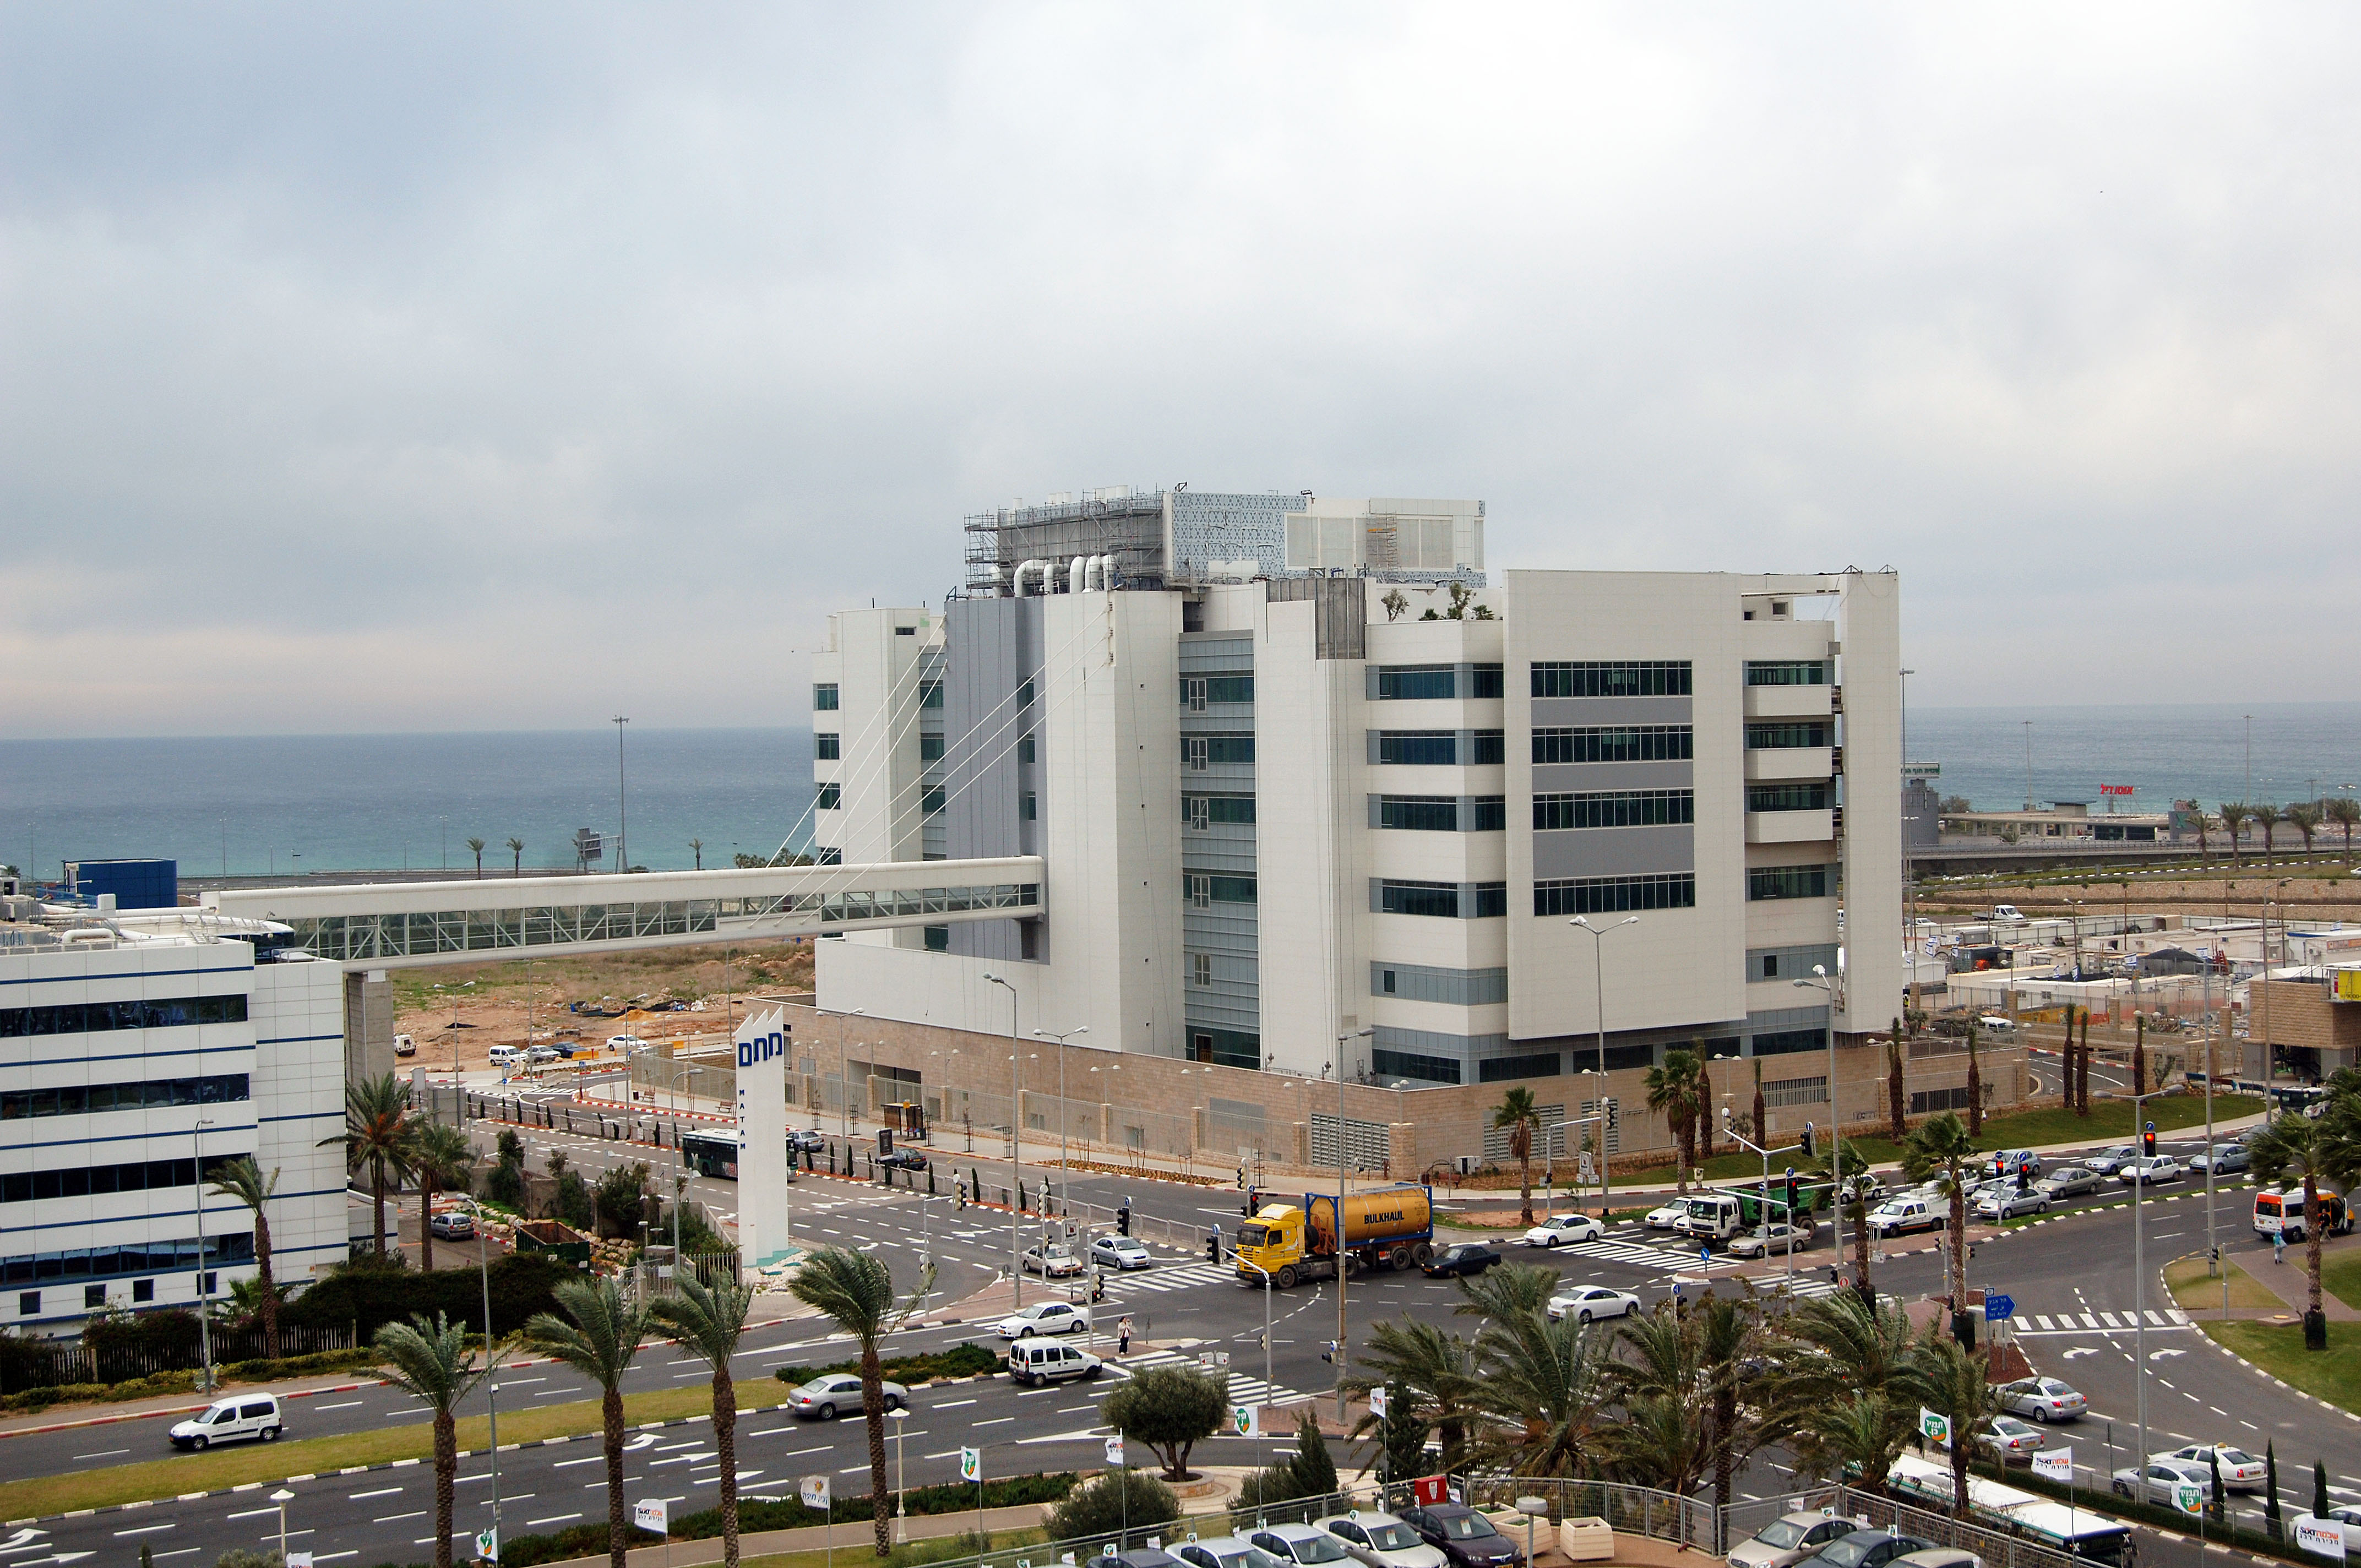 Intel Haifa Design Center is built with a sustainable design